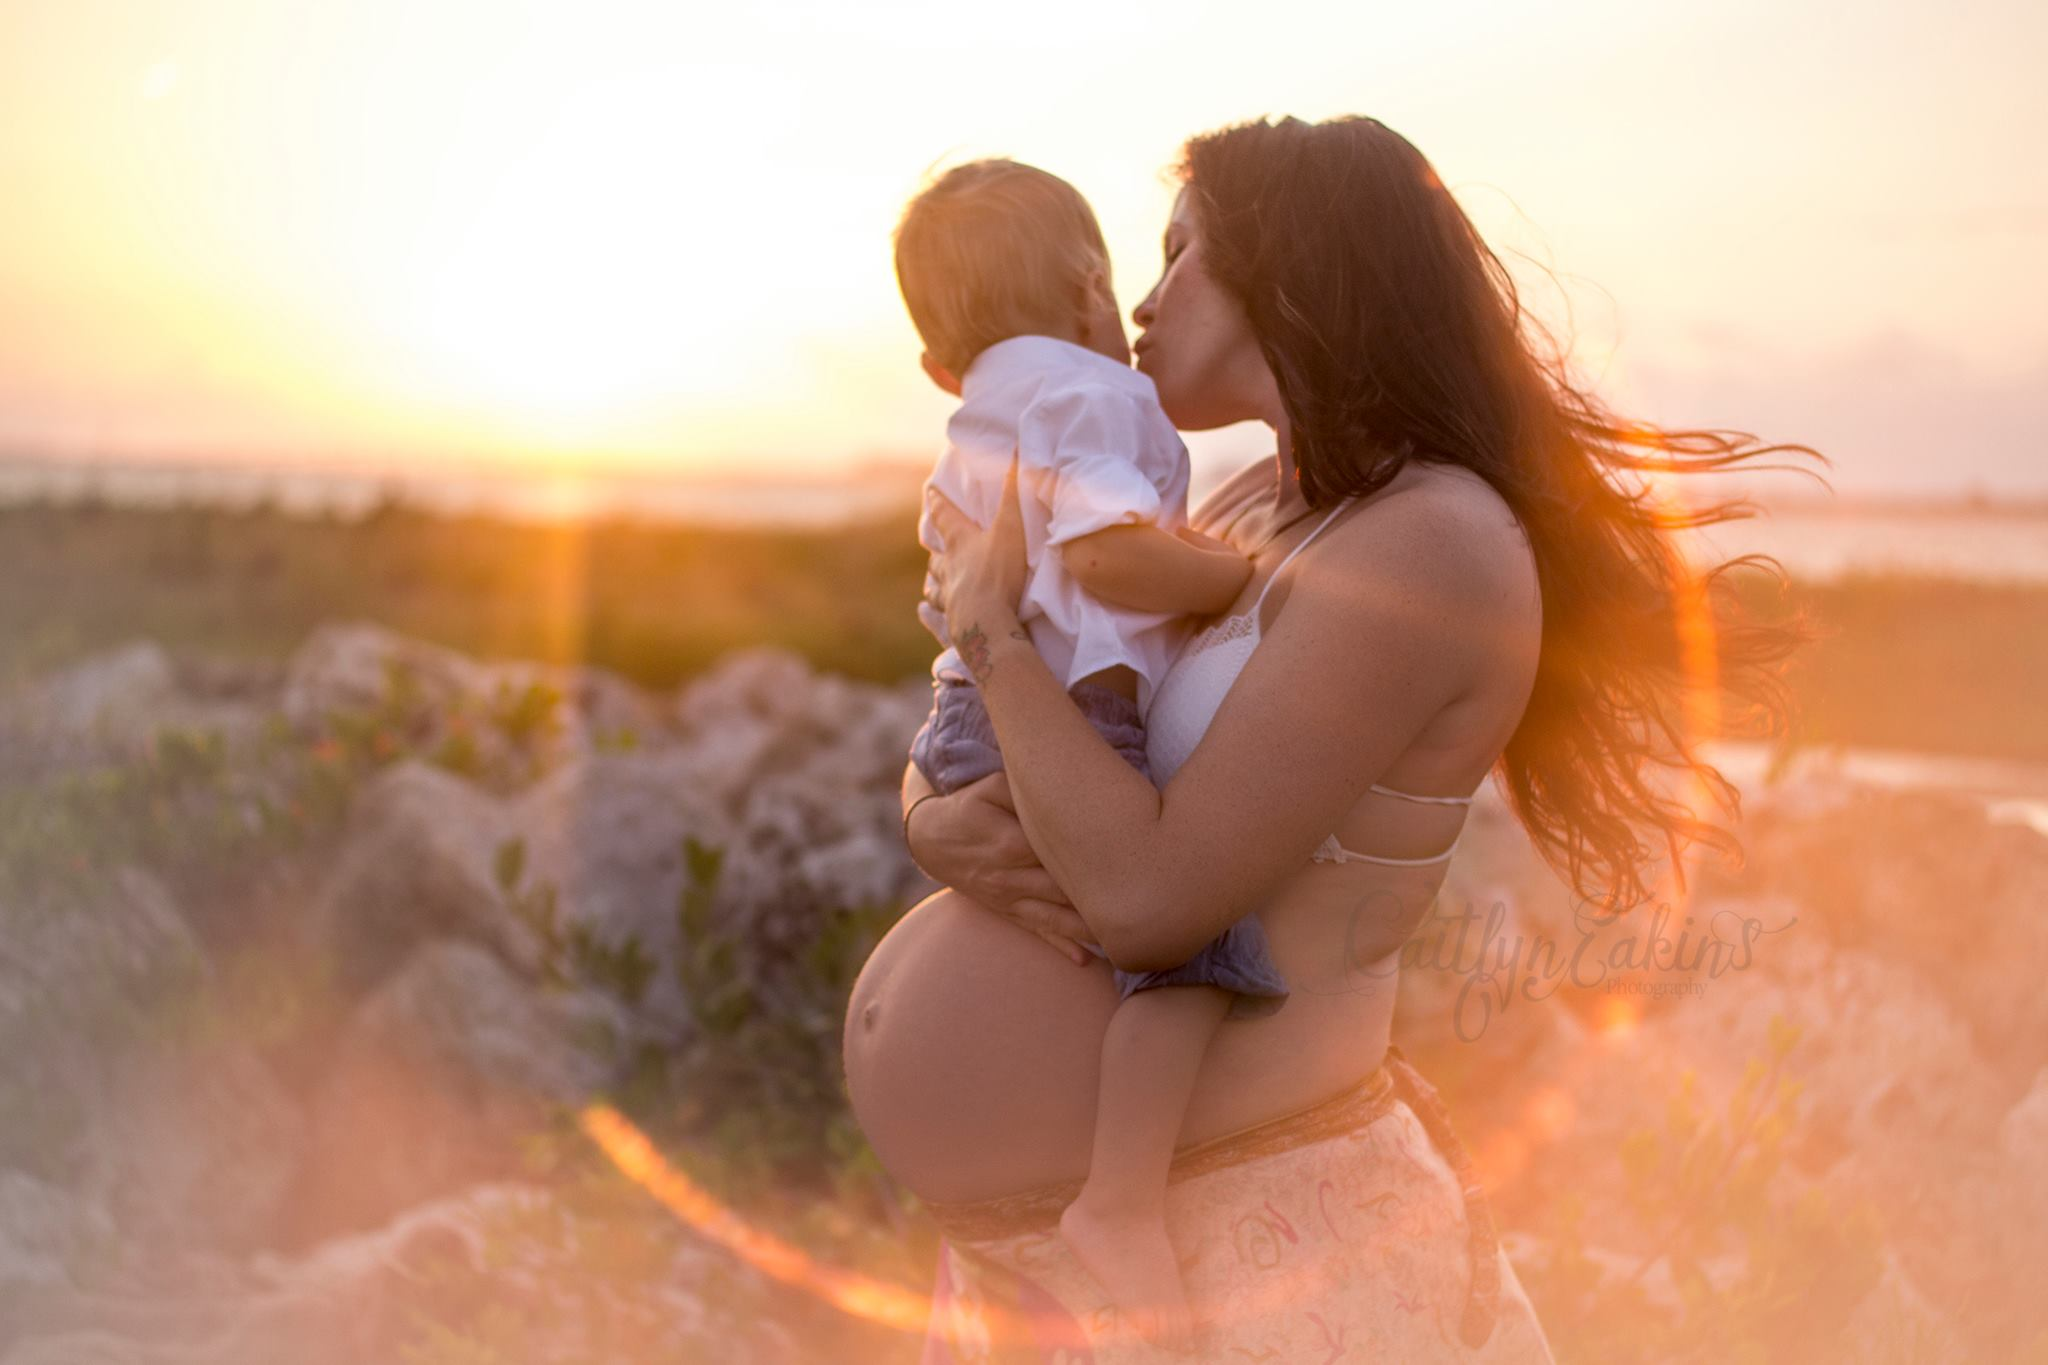 mother and son maternity pictures, daily fan favorite